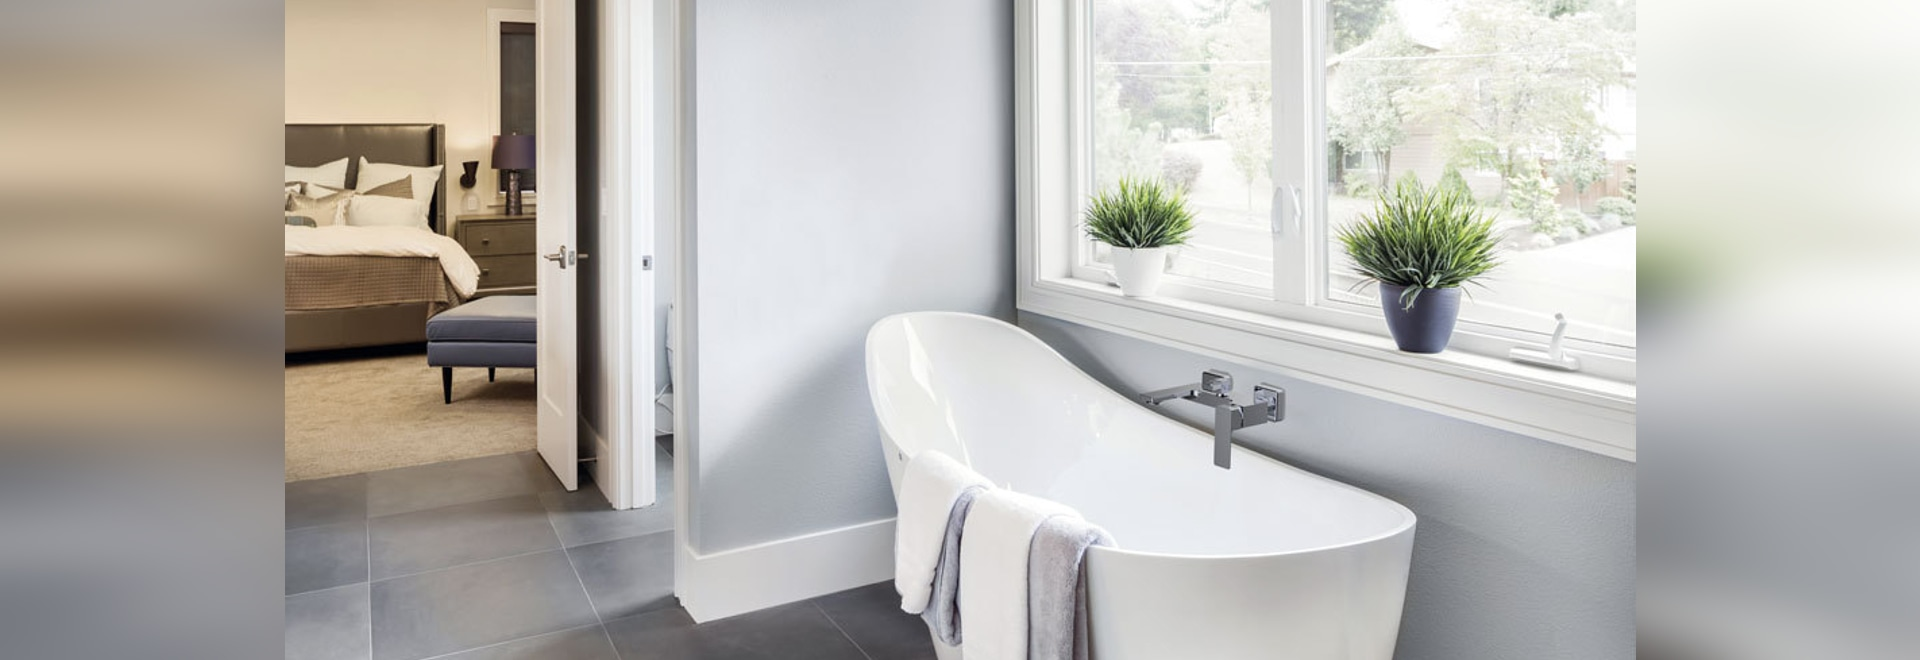 How to choose the right tap for the bathtub with legs